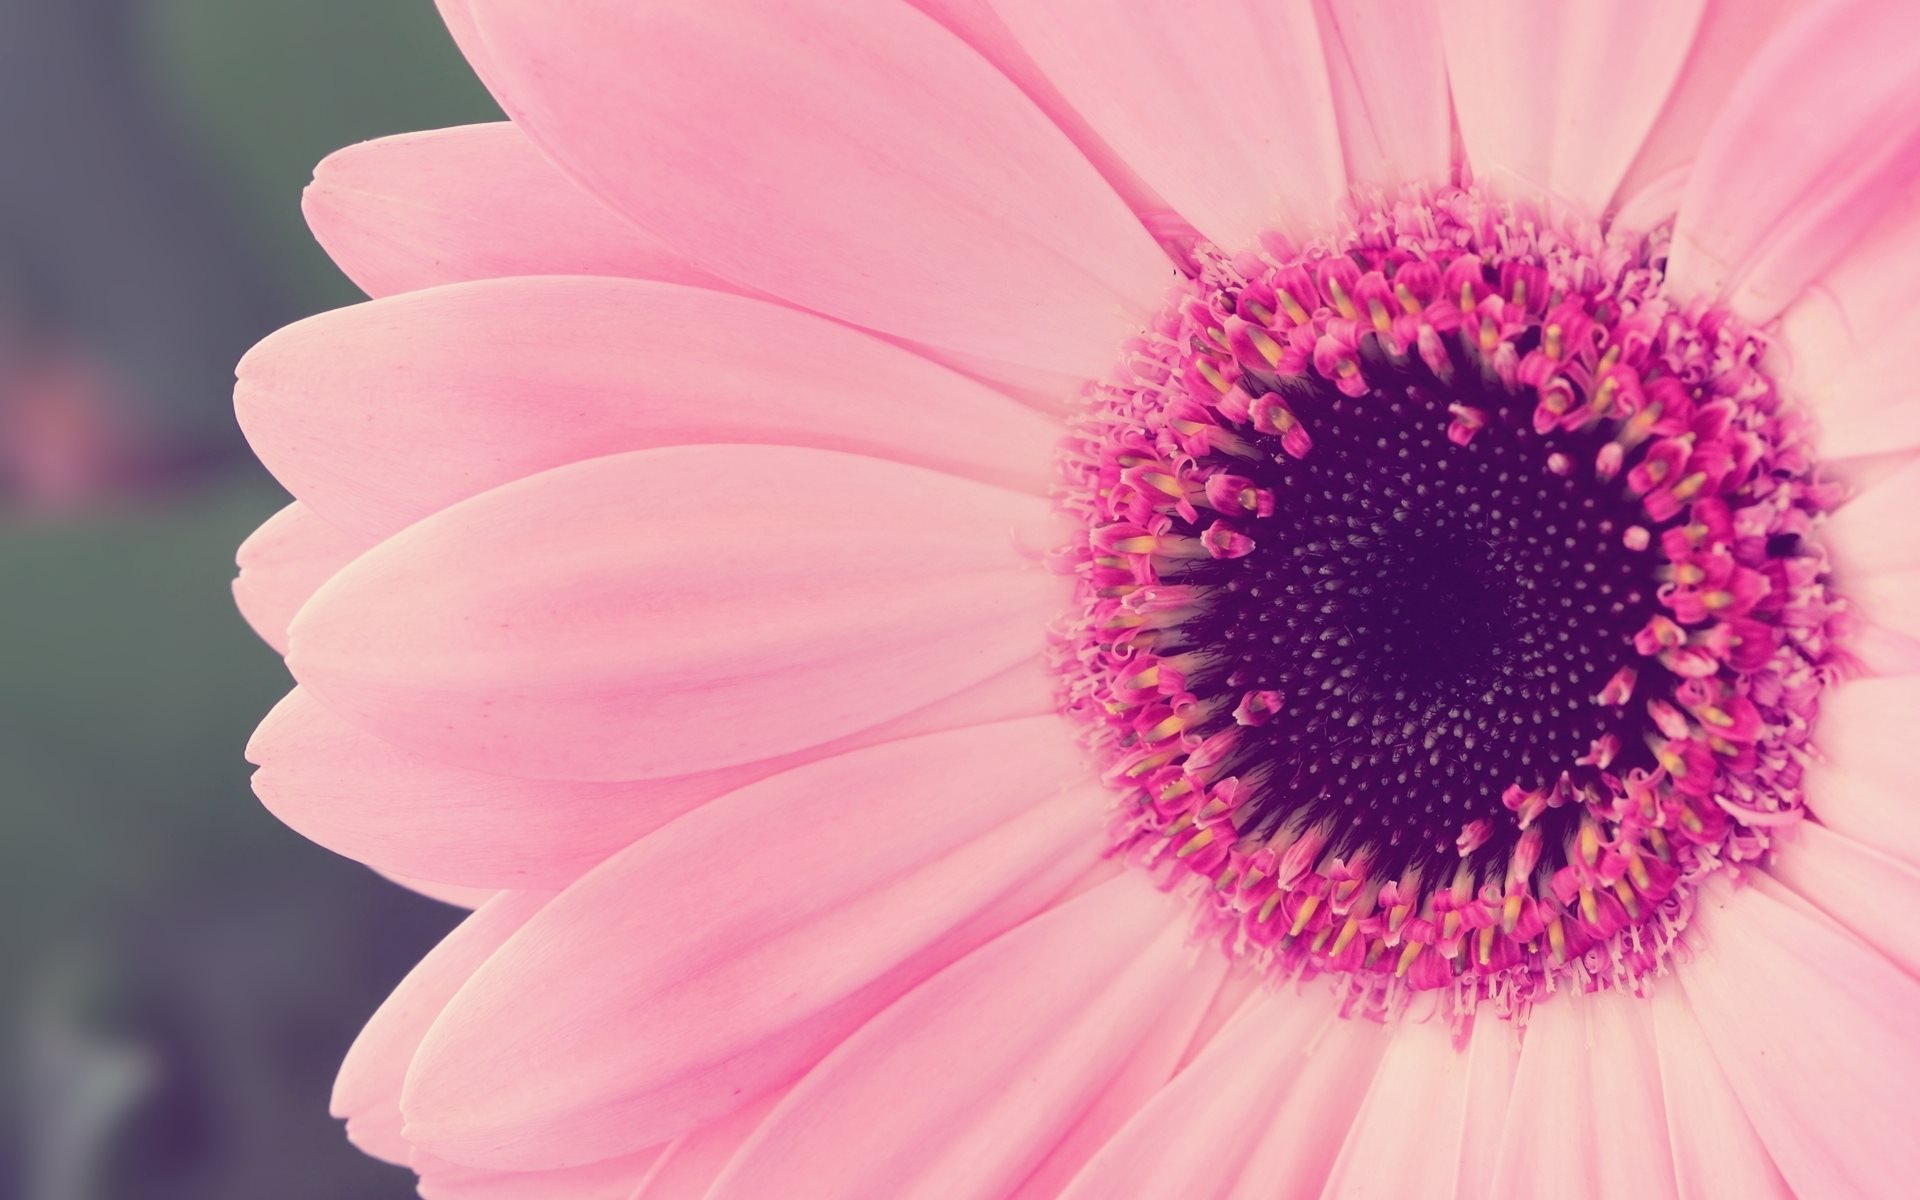 Pure Pink Flower Beauty 1920 X 1200